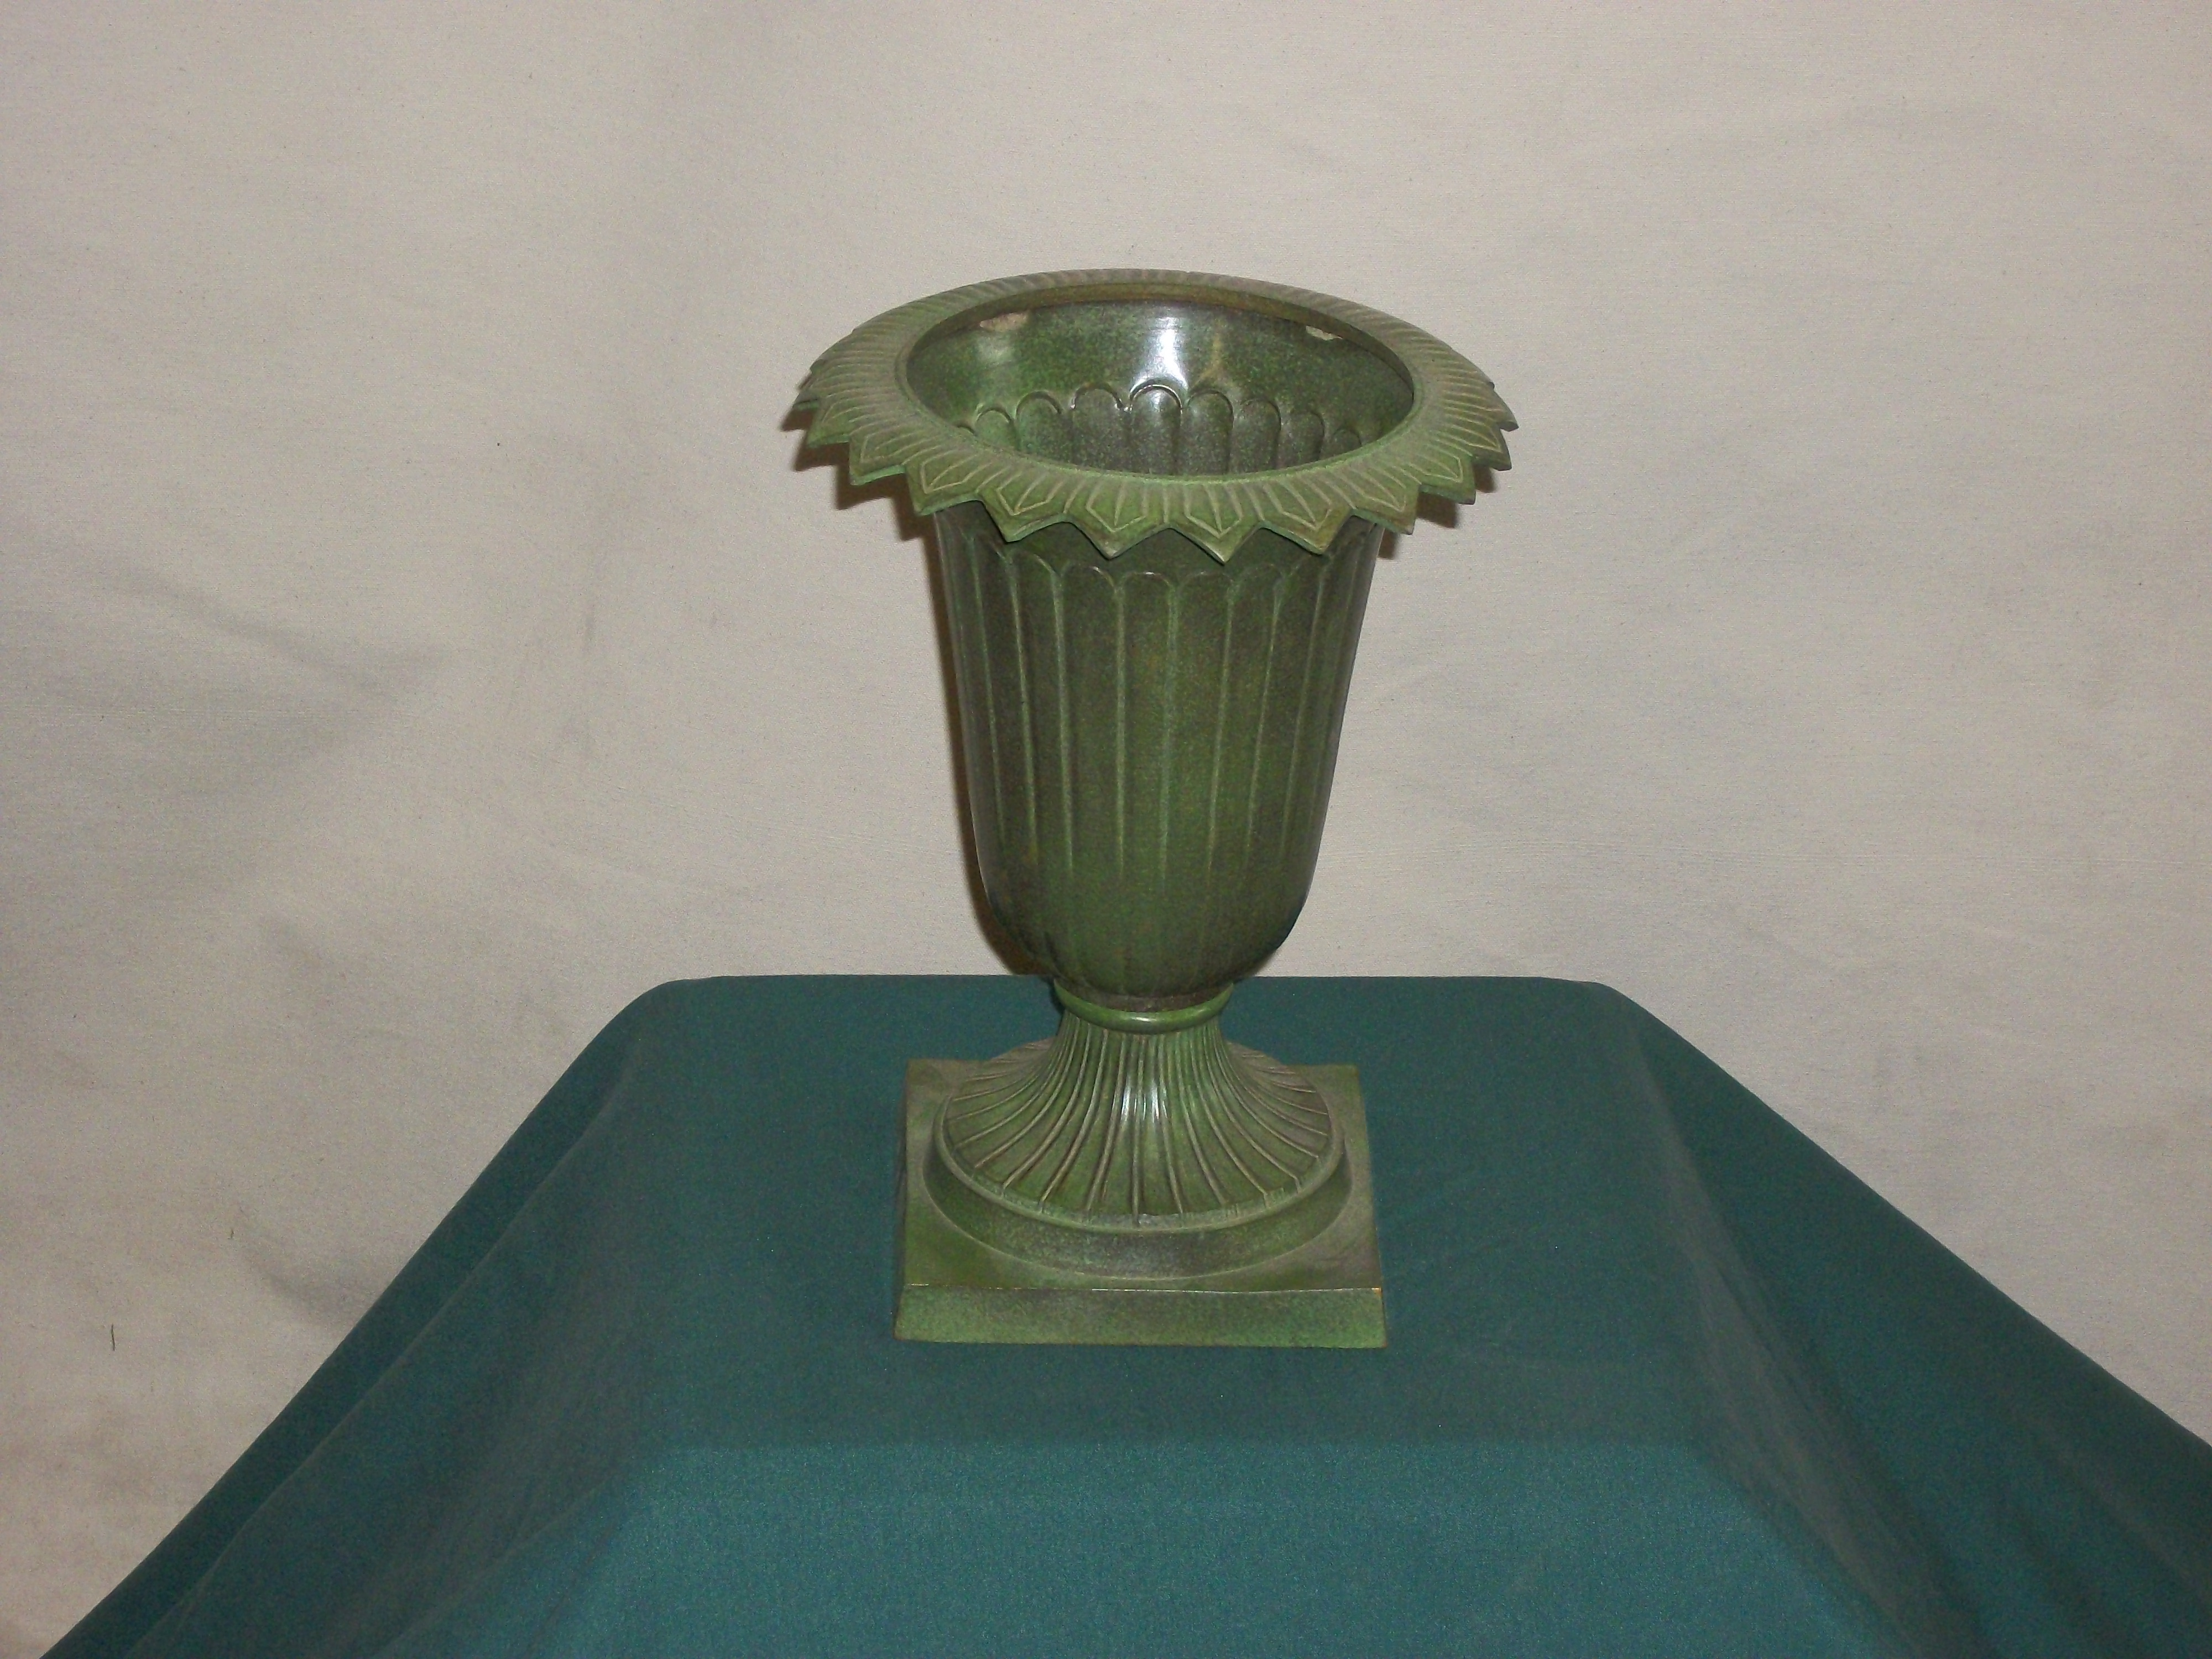 Vases urns and pots 8 small green metal urn reviewsmspy